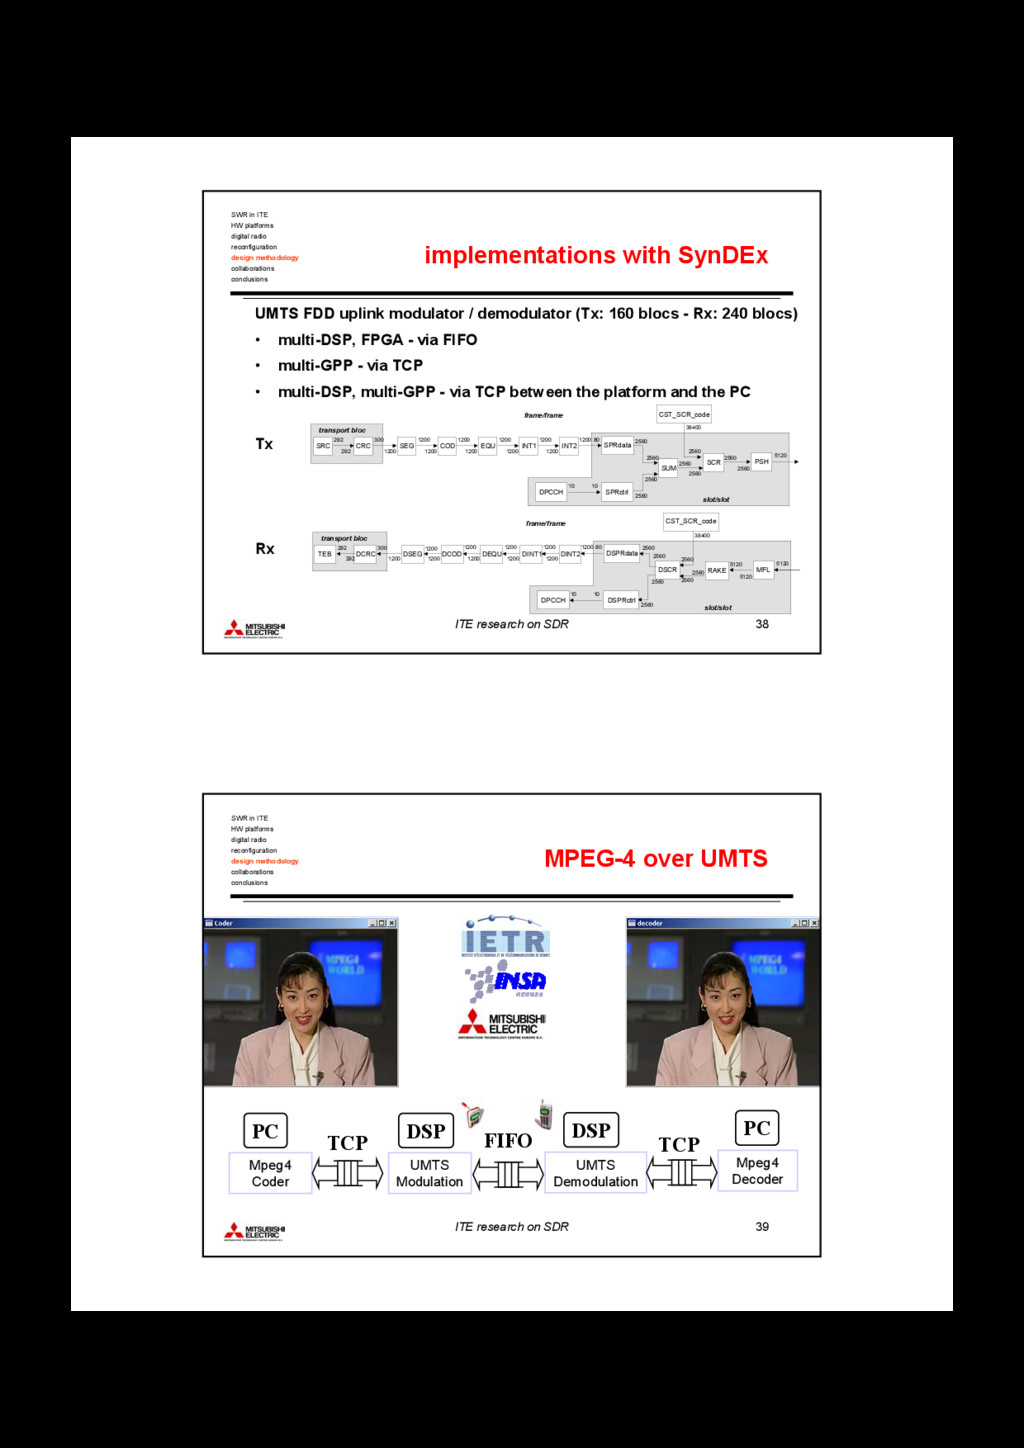 ITE research on SDR 38 implementations with Syn...